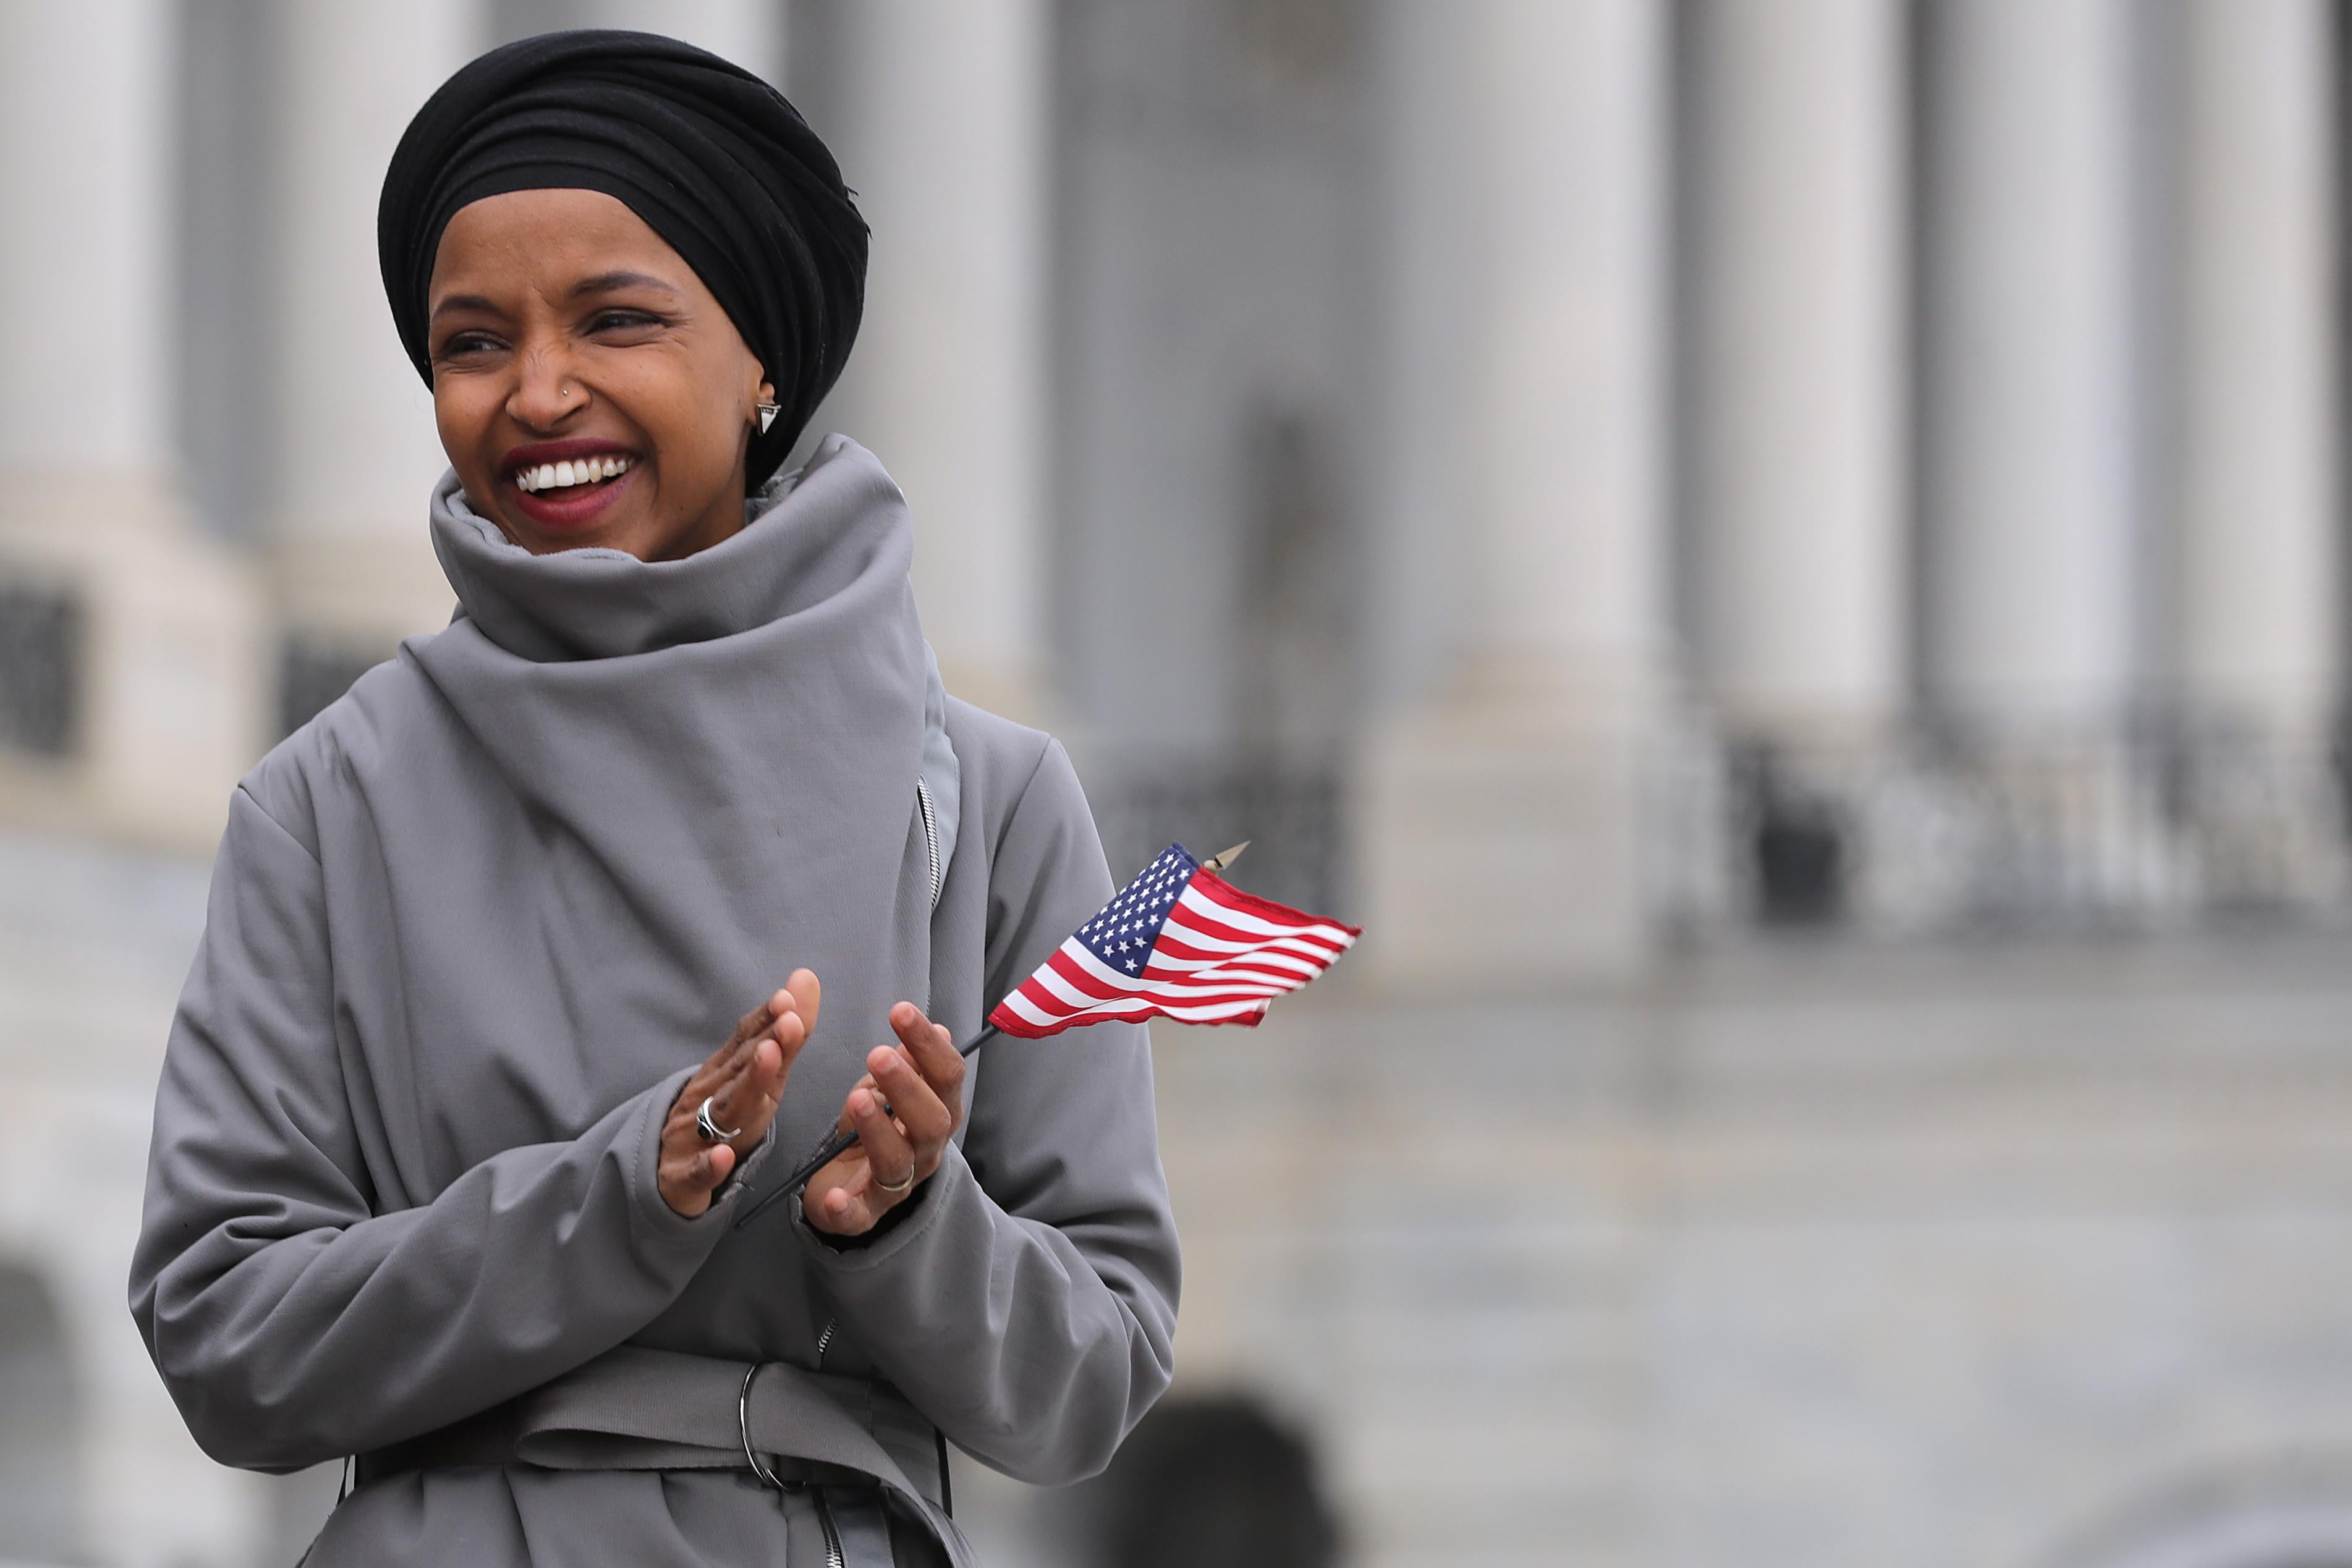 Rep. Ilhan Omar (D-MN) rallies with fellow Democrats on the East Steps of the U.S. Capitol on March 8, 2019 in Washington, D.C.